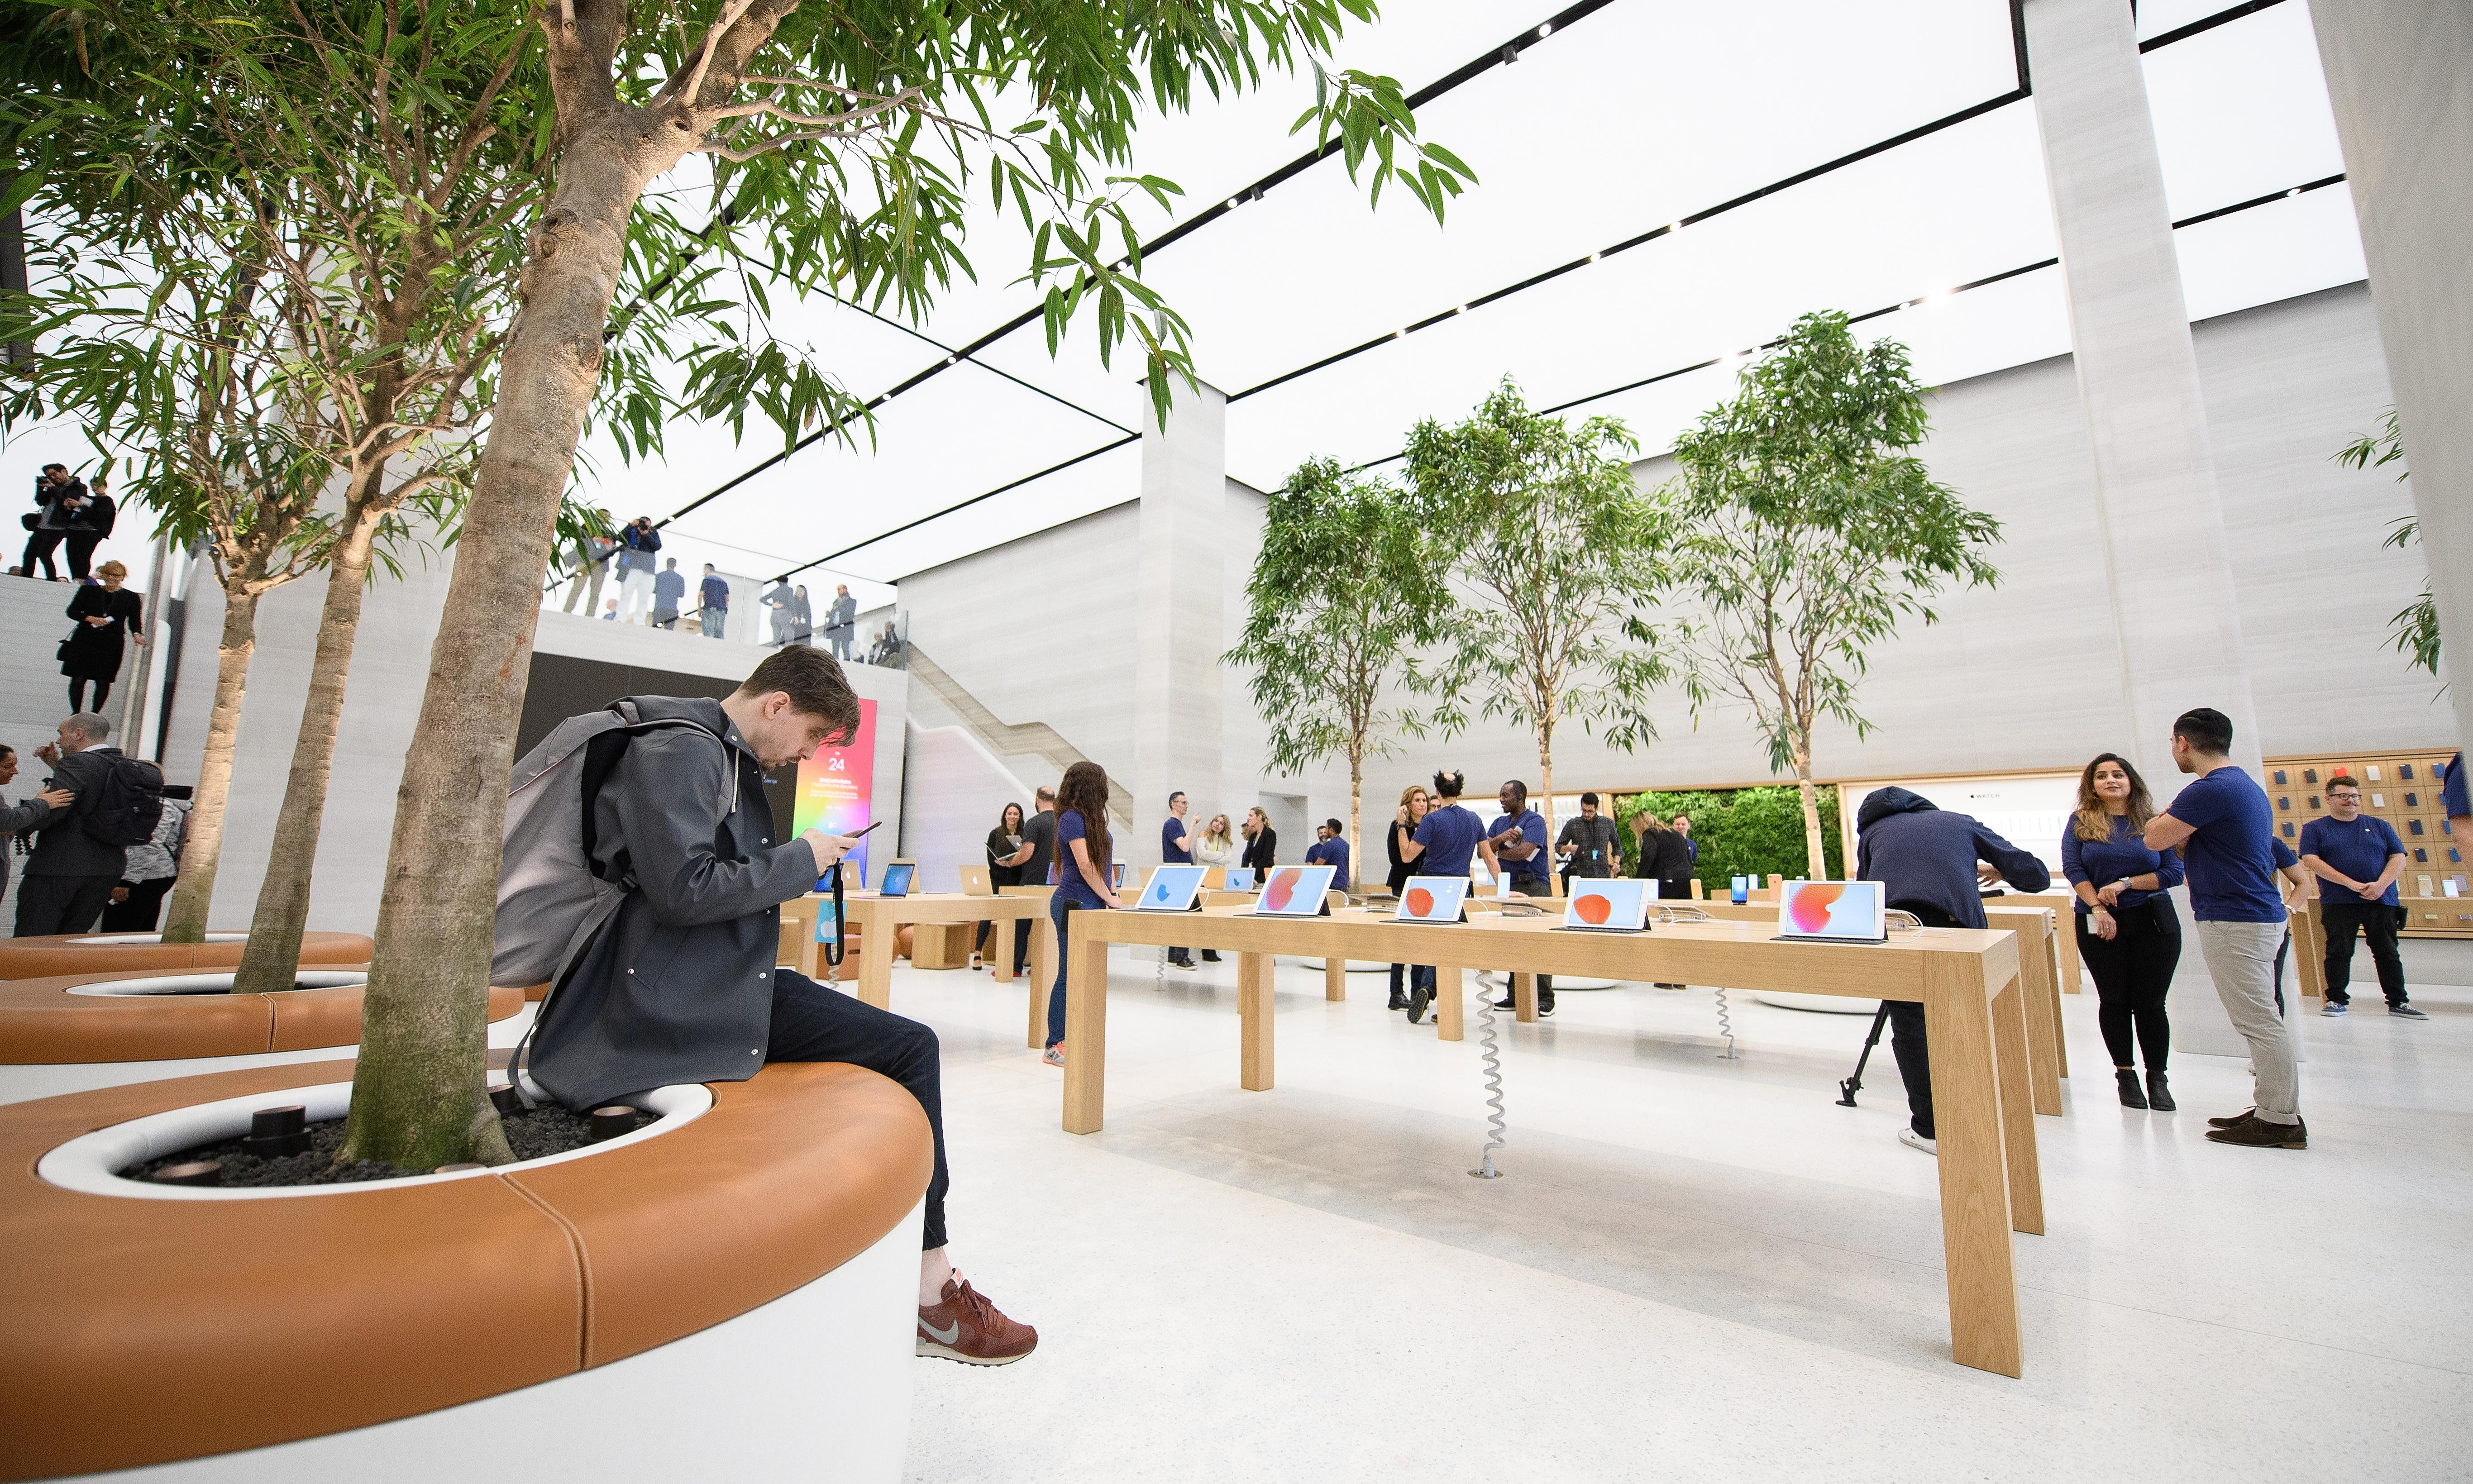 Claps and cheers: Apple stores' carefully managed drama